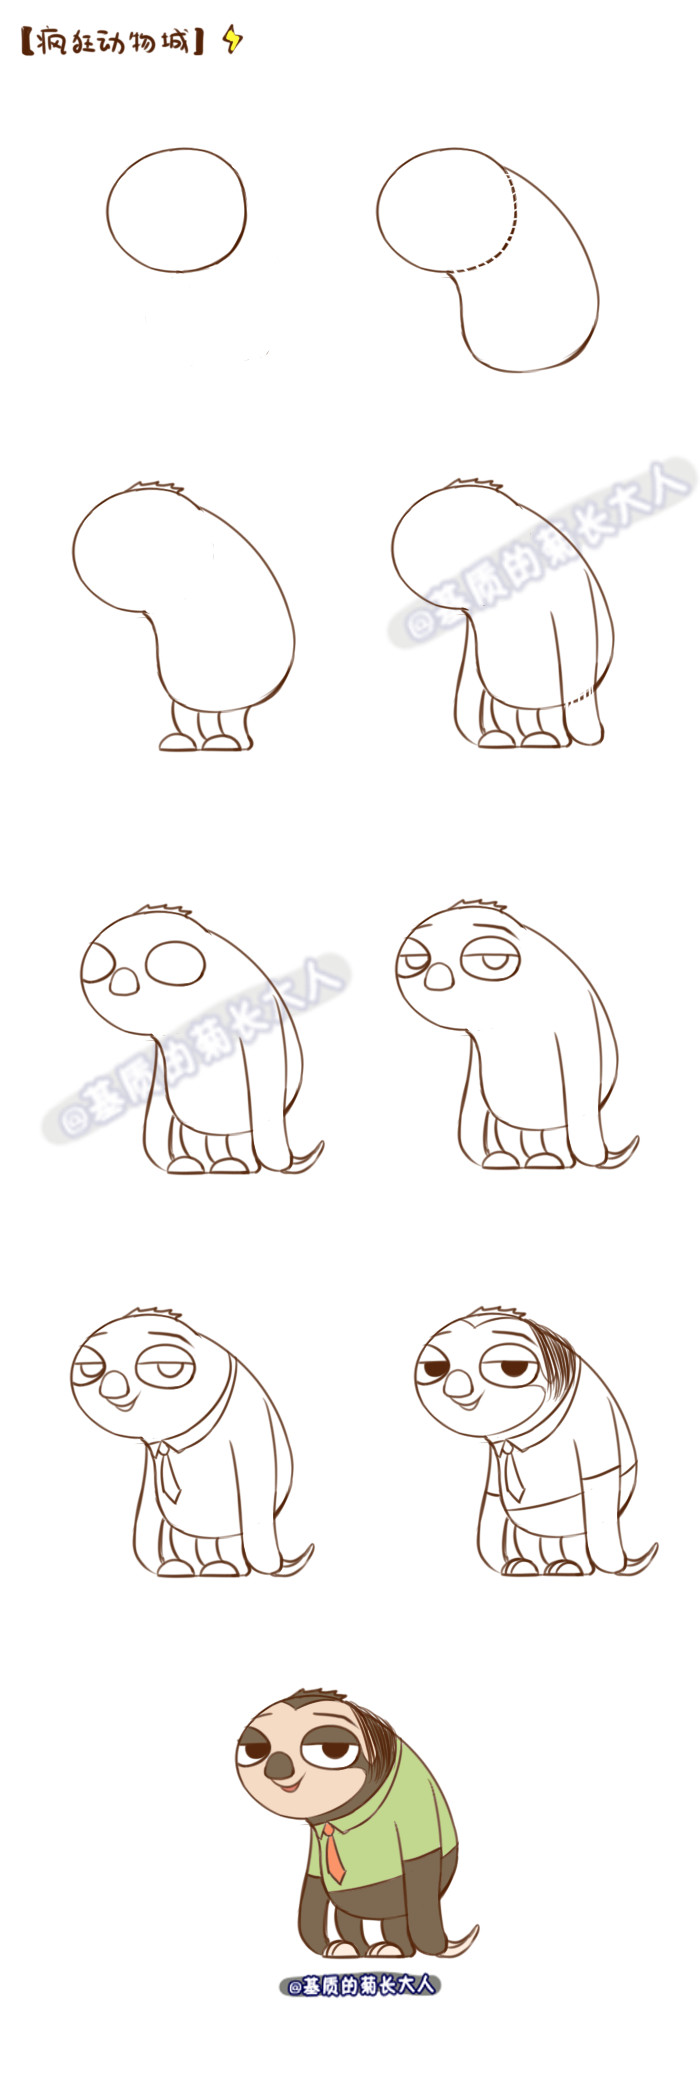 how to draw flash the sloth from zootopia